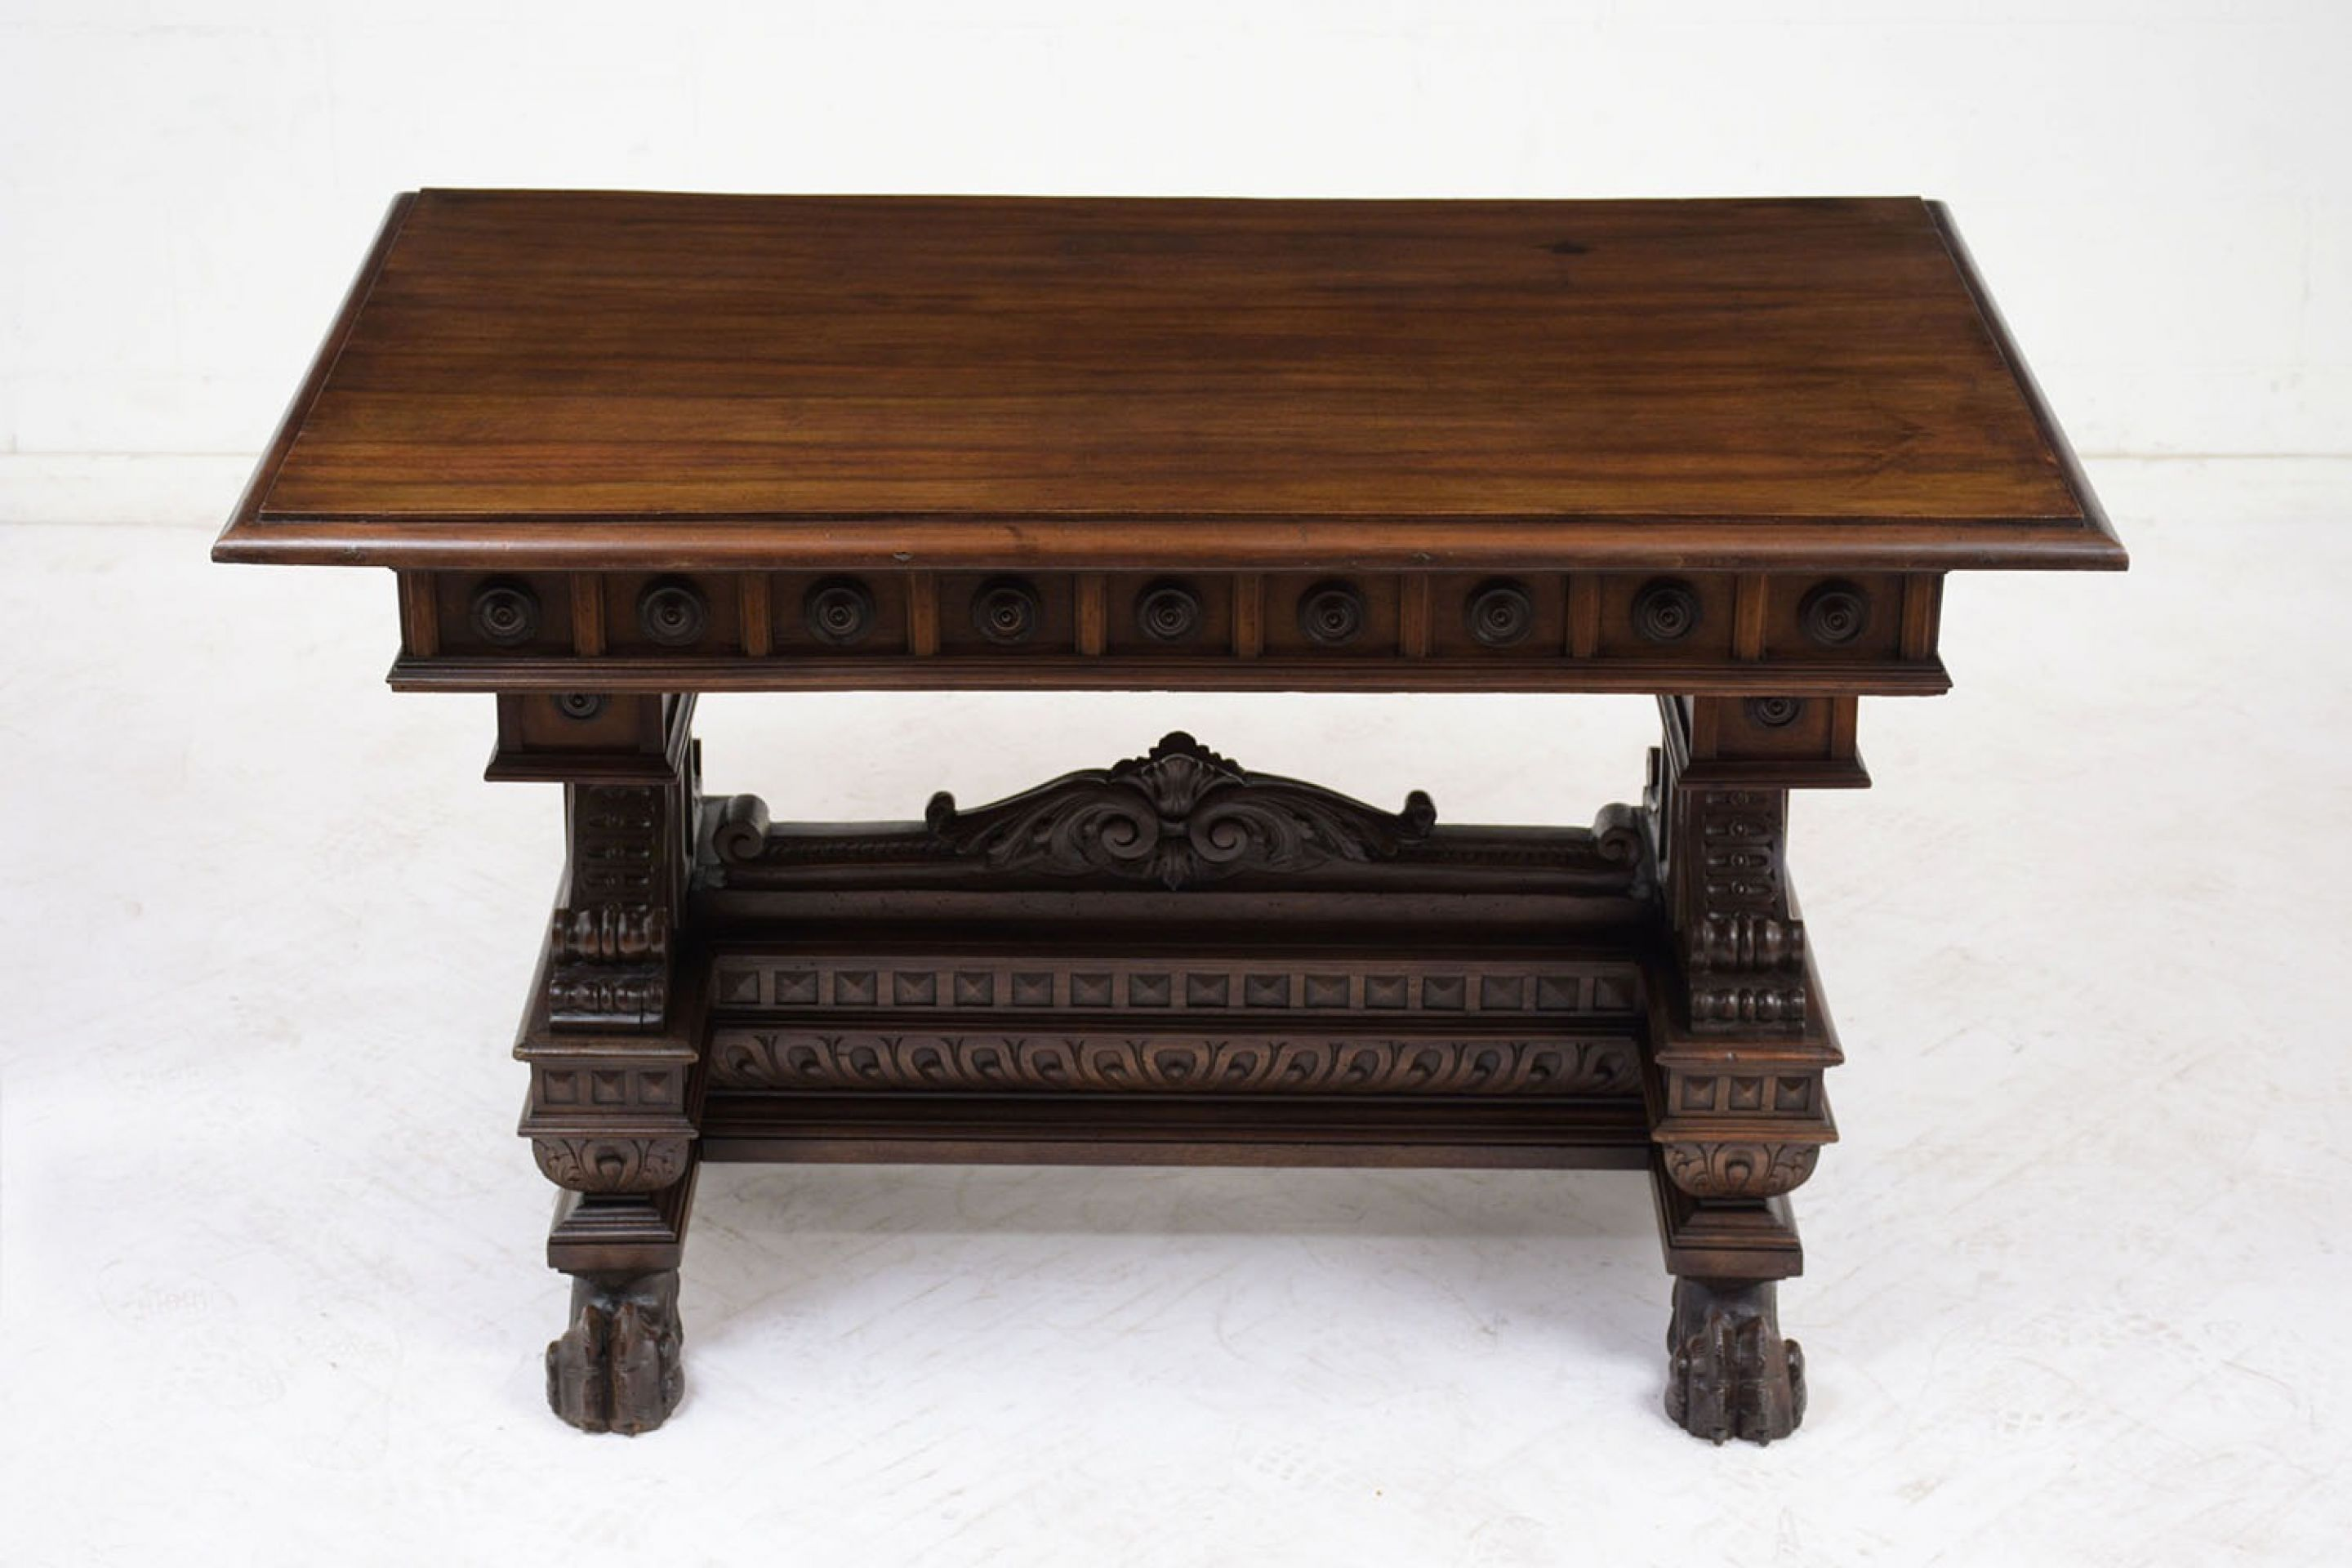 Italian Renaissance-style Carved Wood Library Table